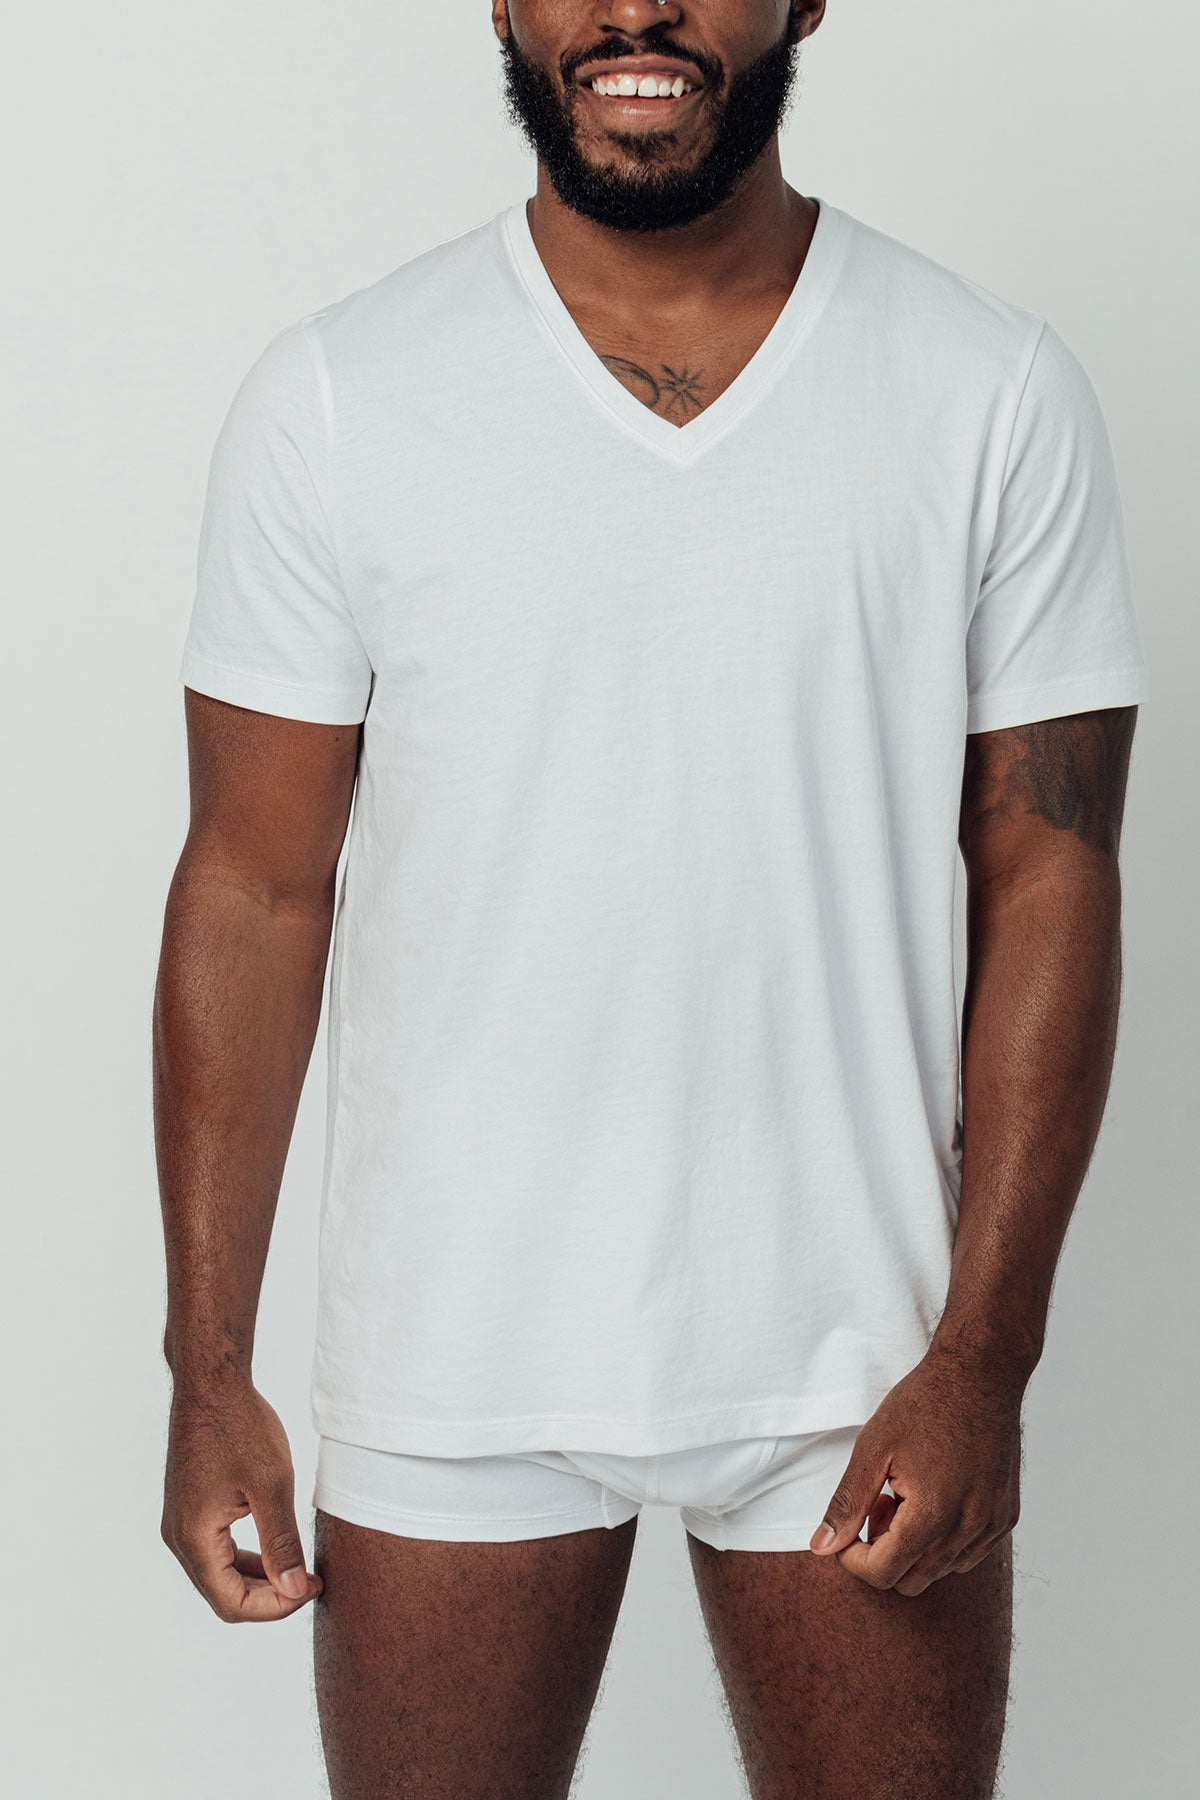 The Relaxed V-Neck